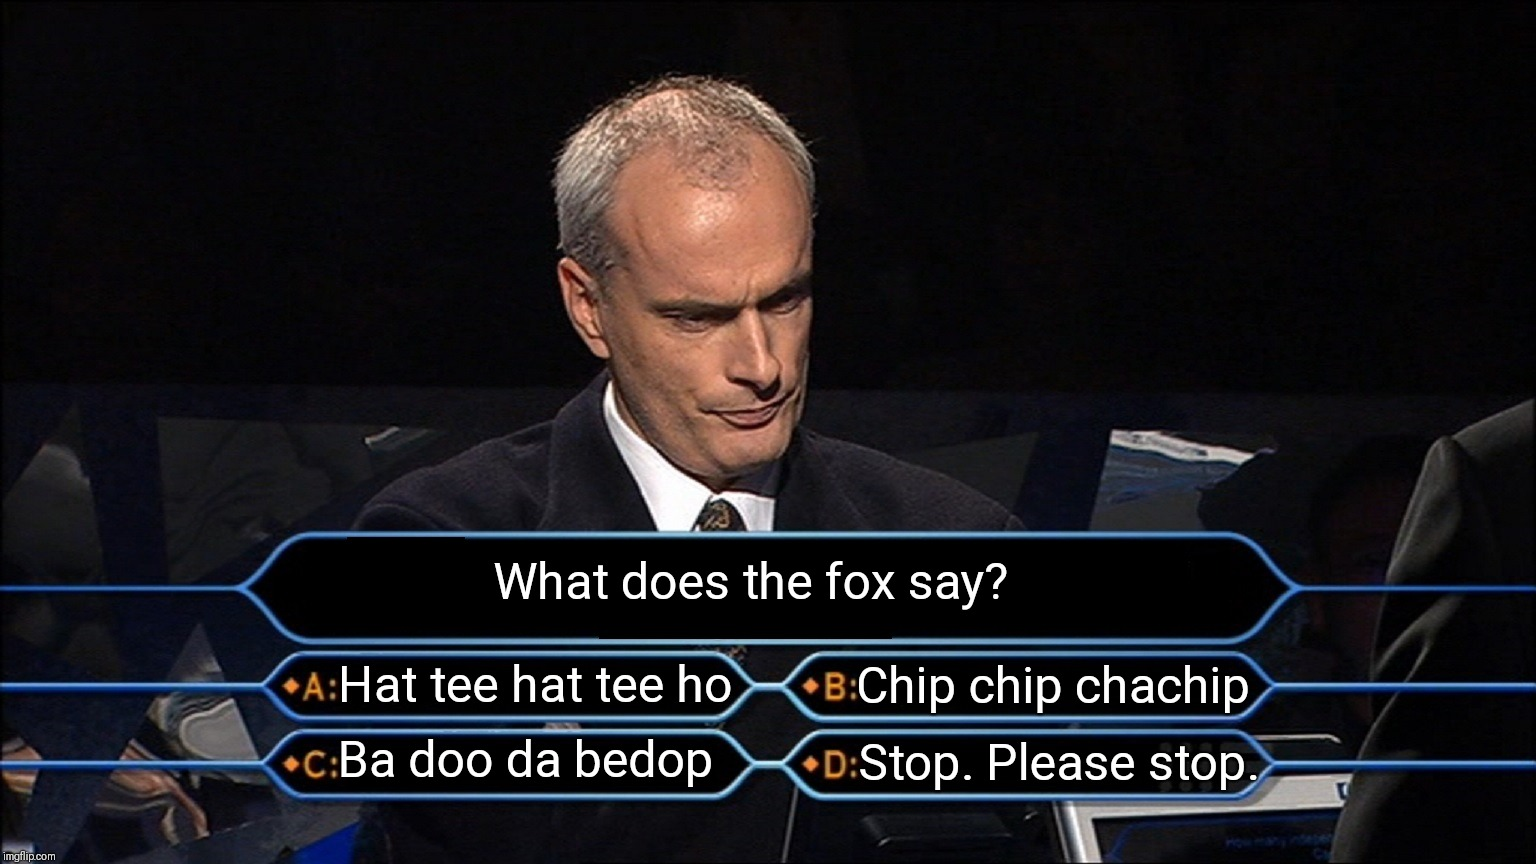 Who wants to be a millionaire | What does the fox say? Hat tee hat tee ho Chip chip chachip Ba doo da bedop Stop. Please stop. | image tagged in who wants to be a millionaire | made w/ Imgflip meme maker